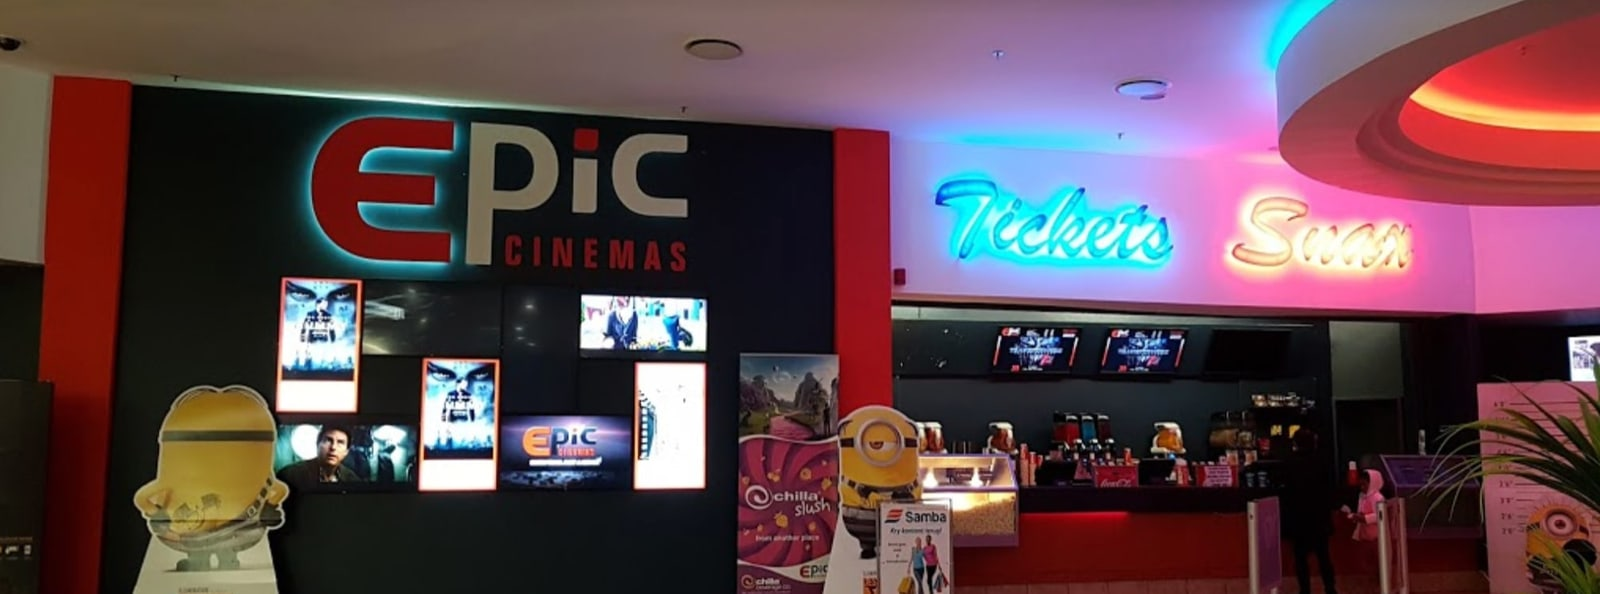 Epic Cinemas